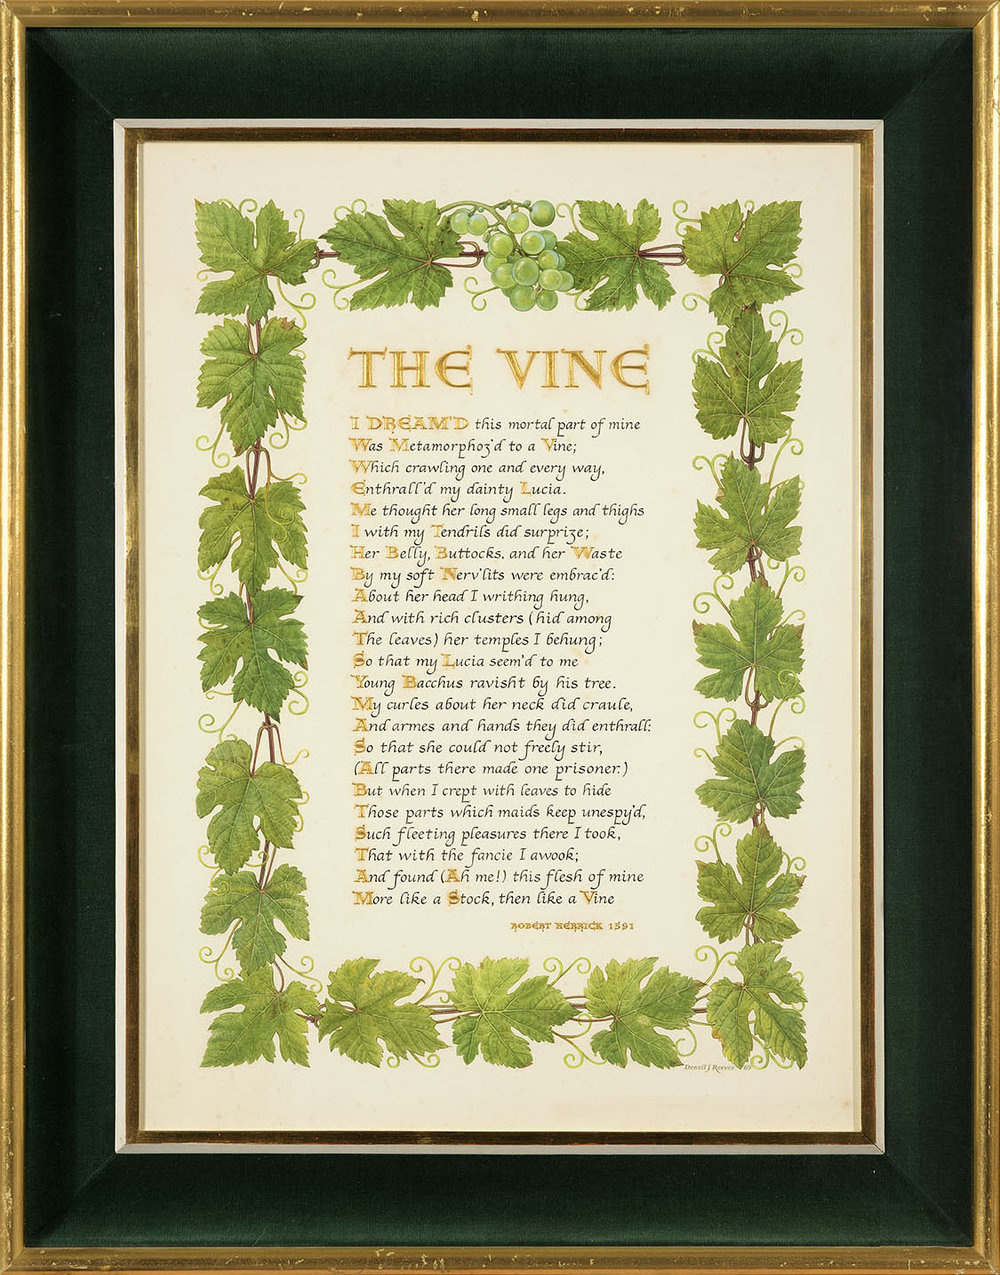 Denzil John George Reeves (1926-2008)    The Vine,  1969, Pen and ink calligraphy/lettering and watercolour on paper, 22 x 16 ¼ in, Signed and dated  [CAS 16] Acquired in 1973